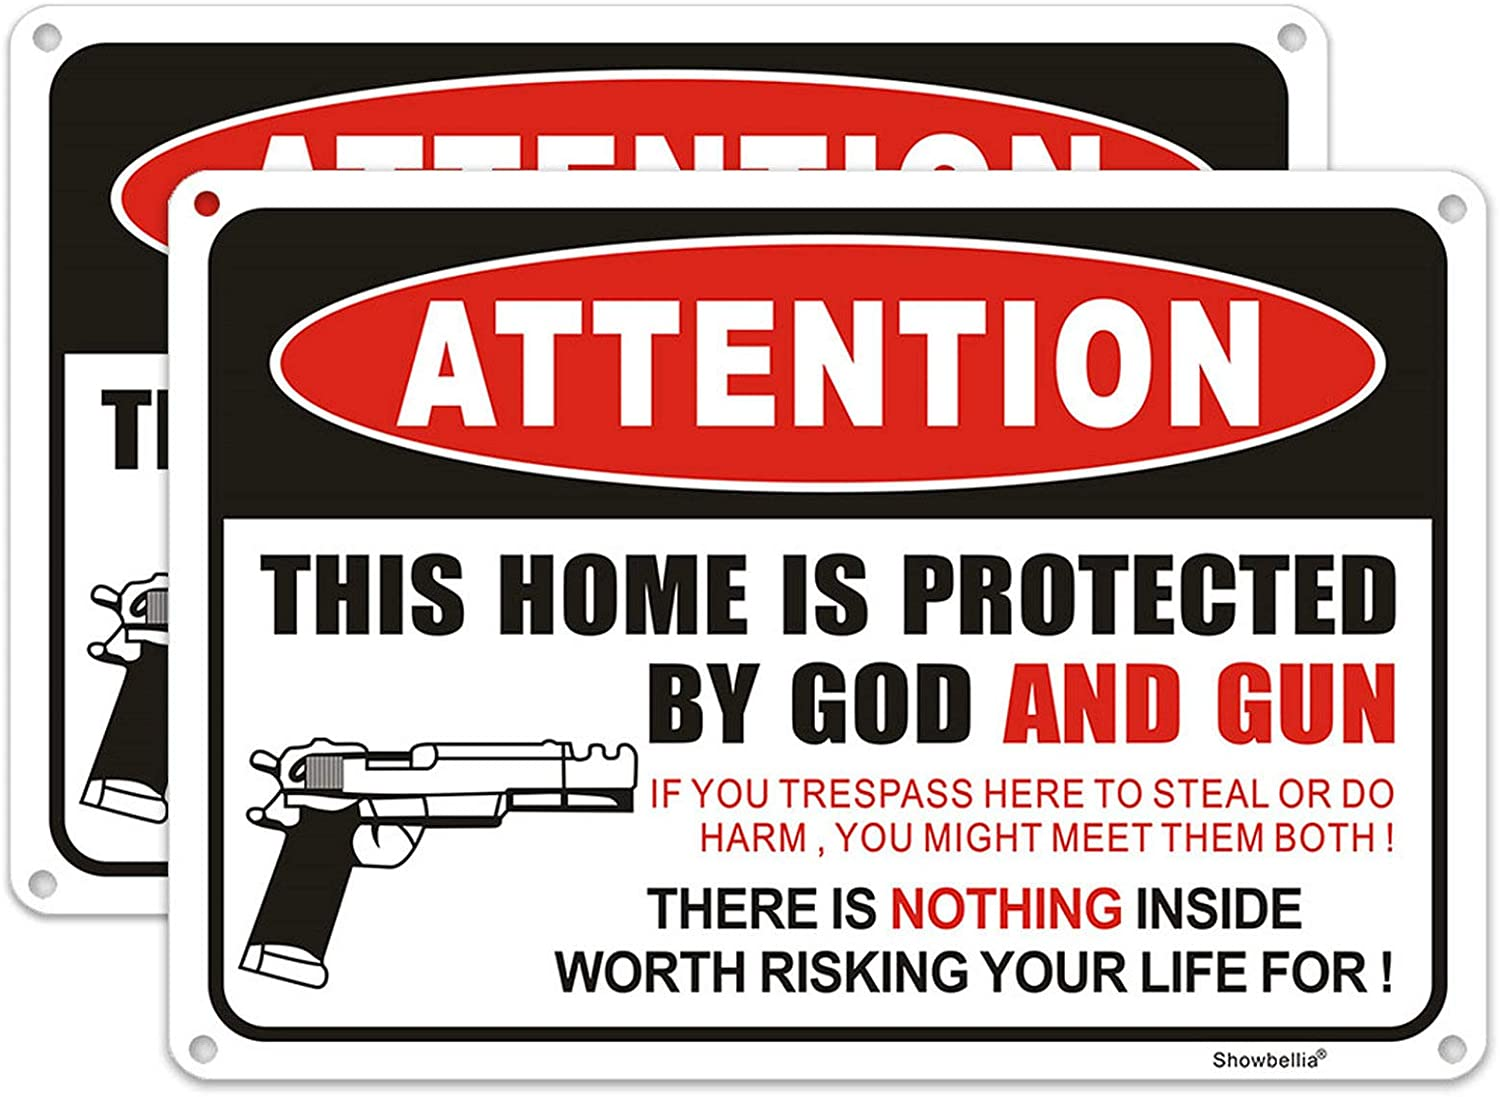 Showbellia 2 Pack Gun Signs This Home is Protected By GOD and Gun Rust Free Aluminum, Weather/Fade Resistant, Easy Mounting, Indoor/Outdoor Use Metal Gun Sign (10